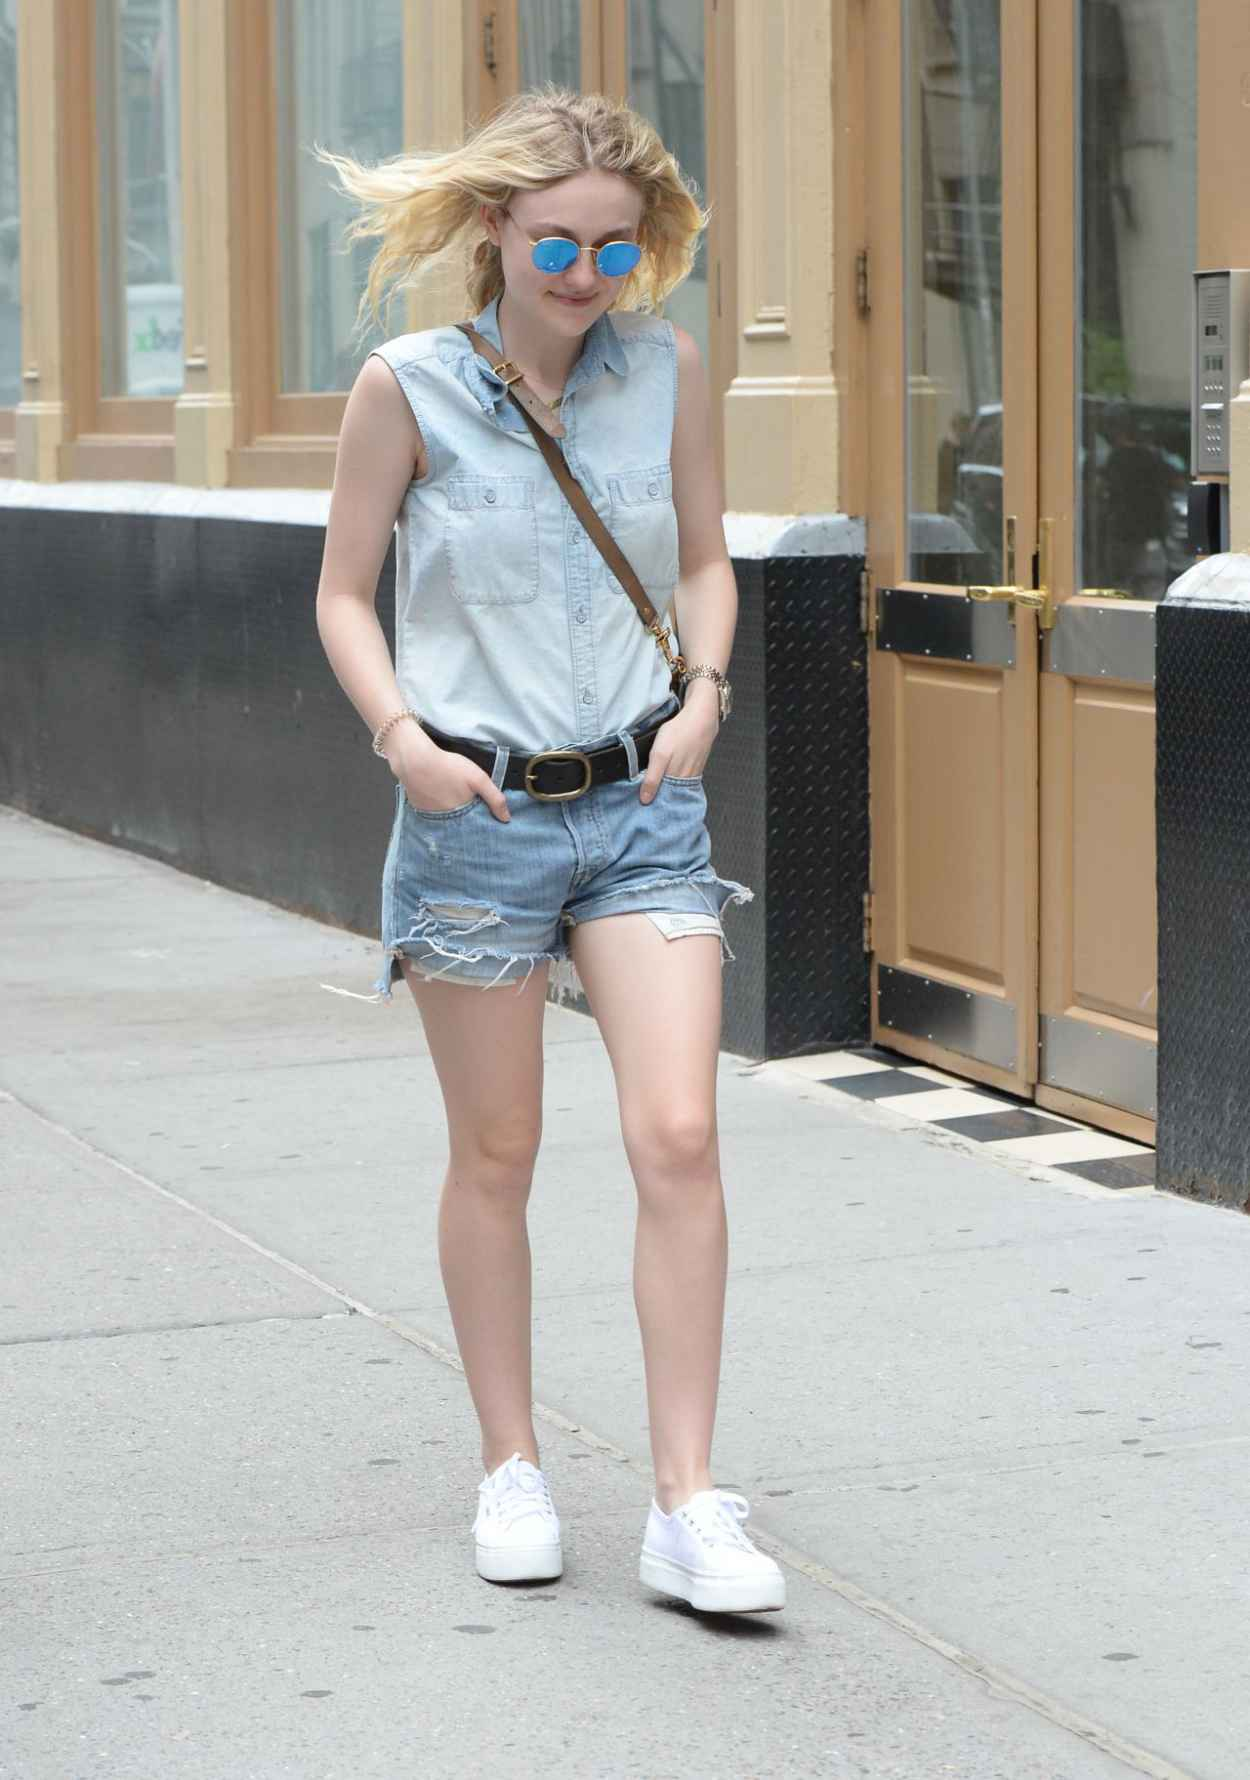 Dakota Fanning Leggy in Jeans Shorts - Soho NYC, June 2015-4